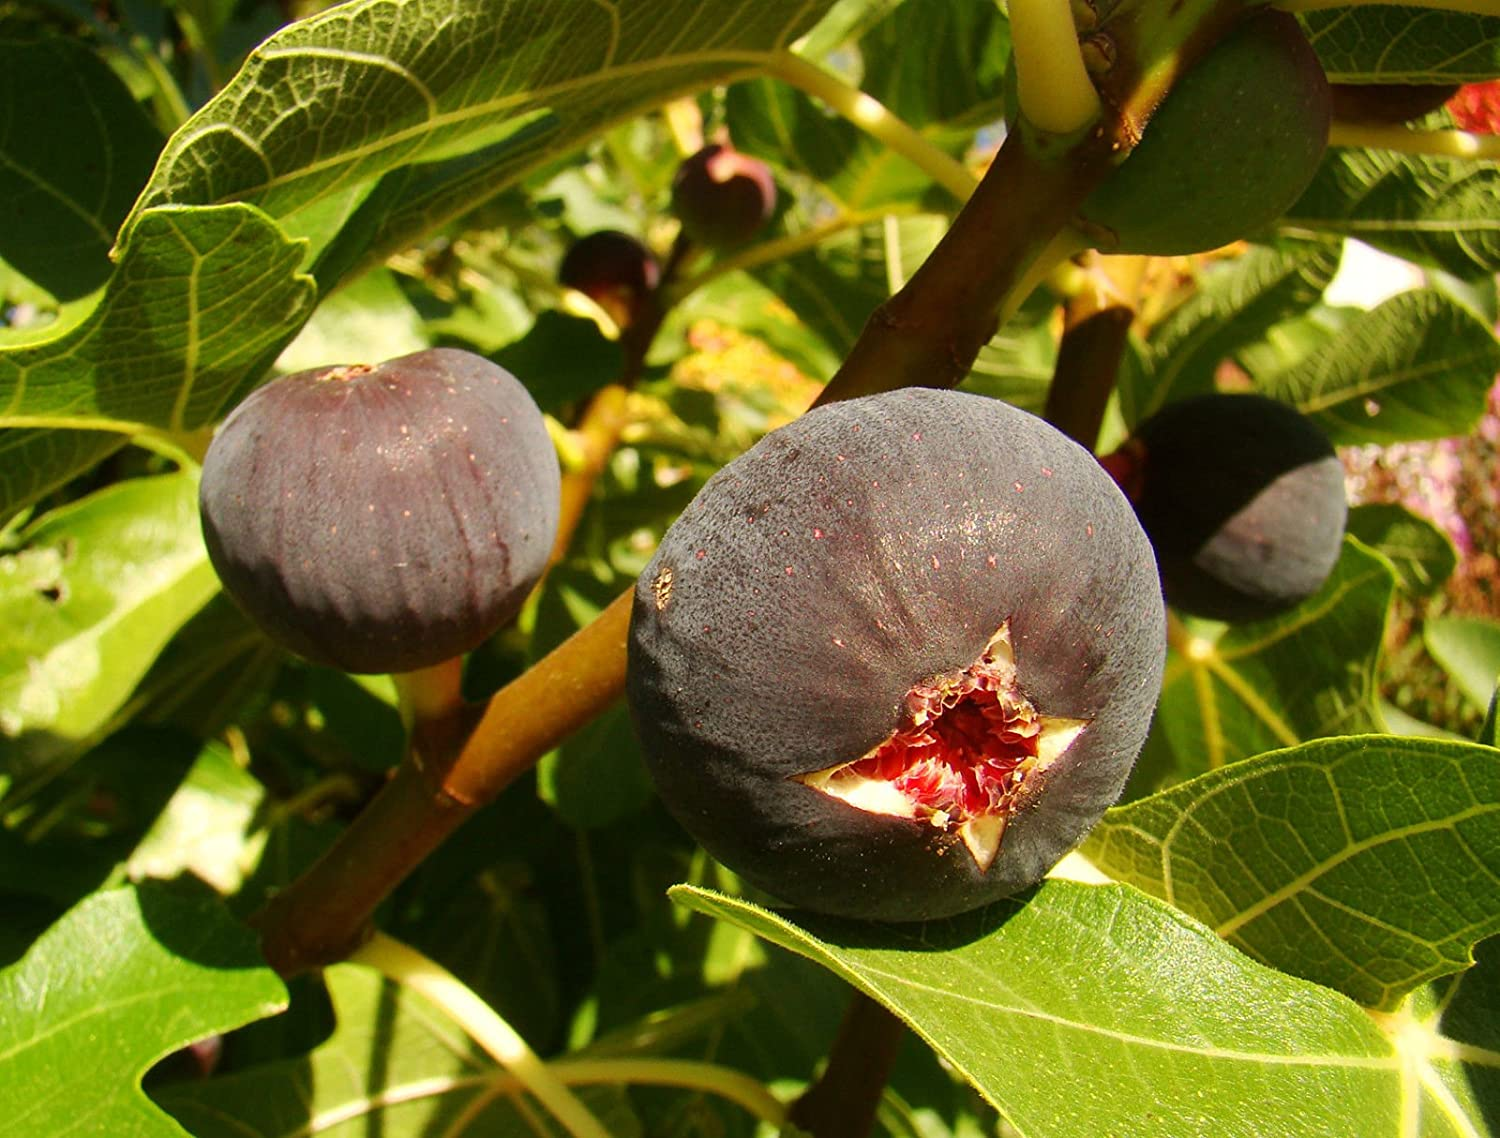 self pollinating Fig Plant FICUS CARICA 'Babits' red-brown fruited variety, very cold tolerant, architectural plant and tasty fruit GROW YOUR OWN FIG MEDITERRANEAN FRUIT STARTER PLANT - 15-20cm tall Tree Online Nursery